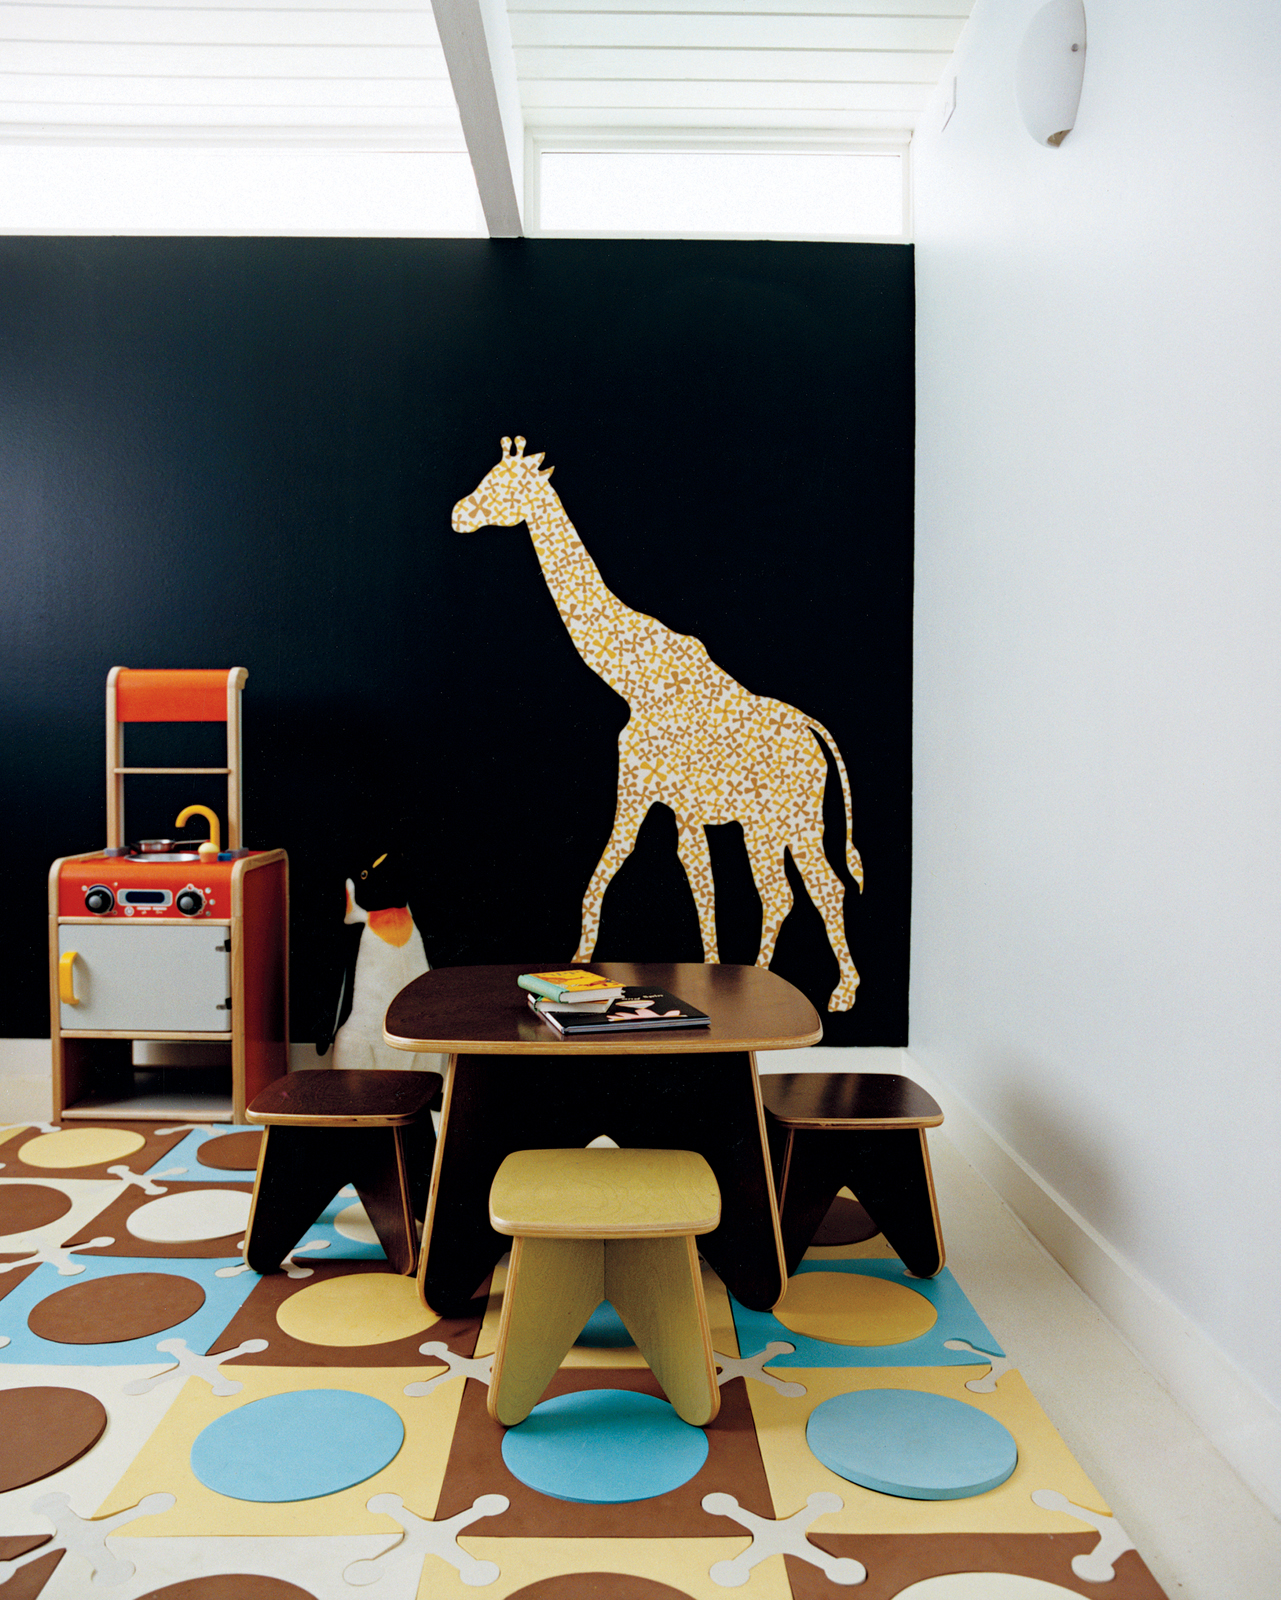 Jennifer and Mattias Segerholt selected a deeply saturated blue hue color for the playroom wall inside their Portland, Oregon, home. All the interior walls are painted with matched hues from Le Corbusier's Polychromie Architecturale, a book that the pair